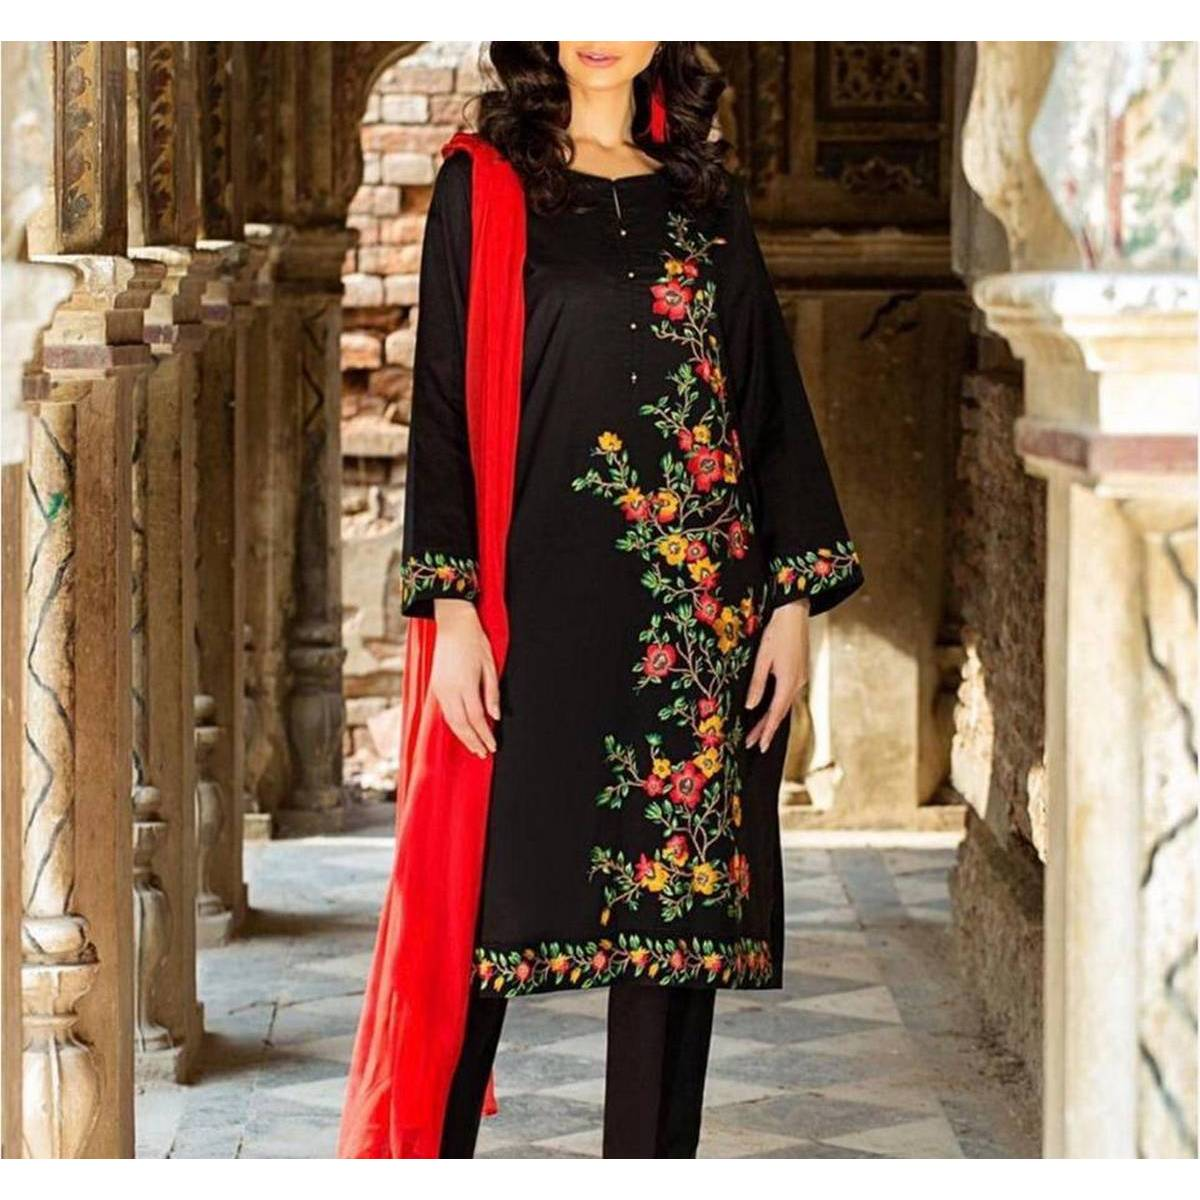 Red Embroidered Dress,red and black dress,